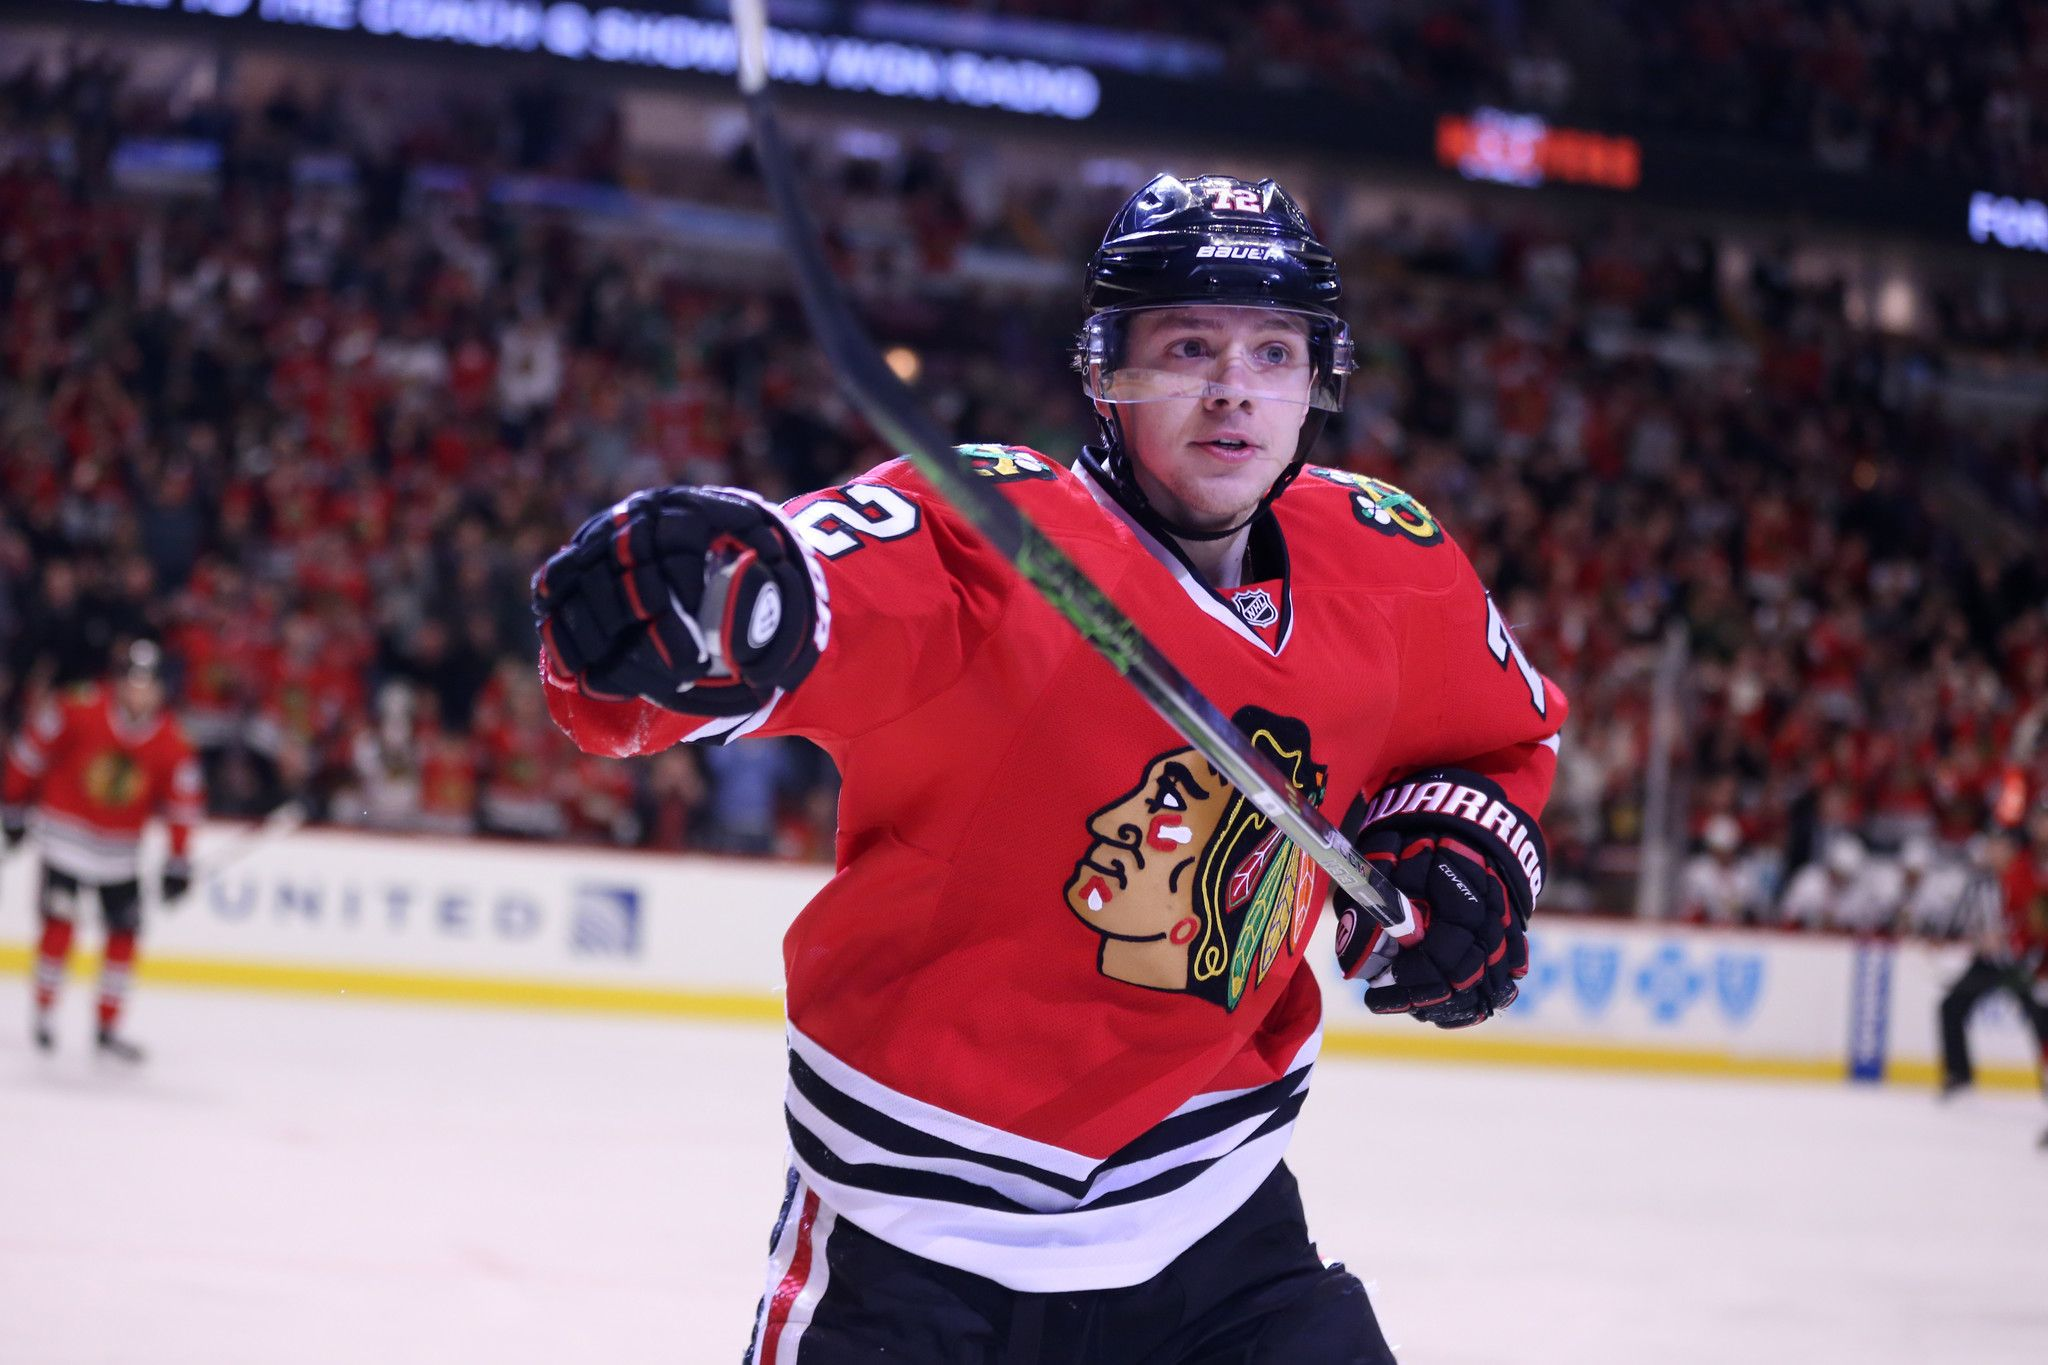 Blackhawks, Artemi Panarin agree to contract extension - Chicago Tribune